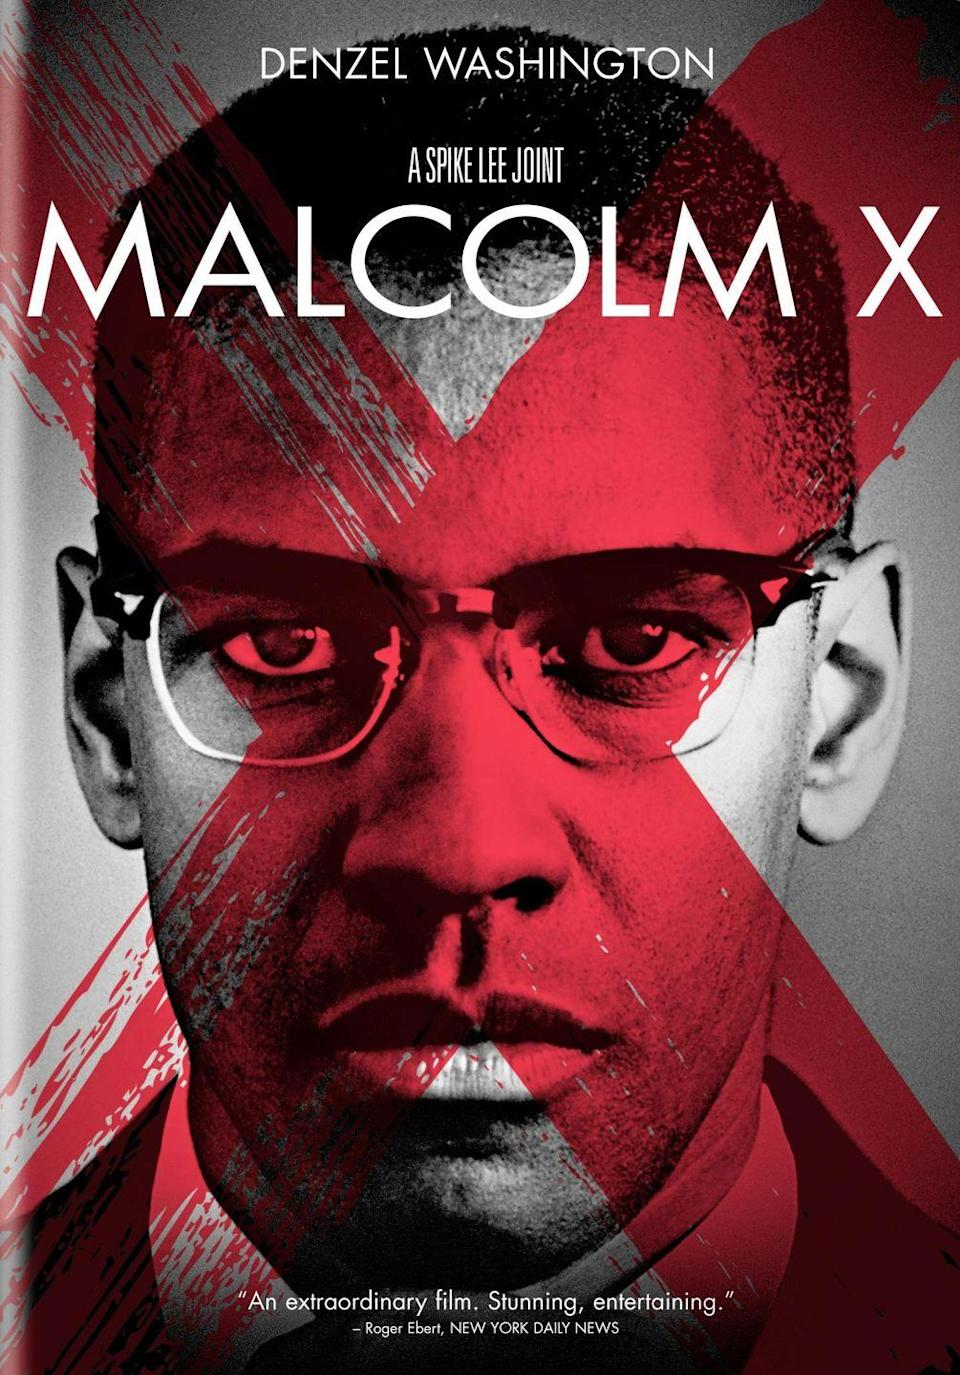 """<p><a class=""""link rapid-noclick-resp"""" href=""""https://www.amazon.com/Malcolm-X-Denzel-Washington/dp/B000QFQE4U?tag=syn-yahoo-20&ascsubtag=%5Bartid%7C10070.g.34963316%5Bsrc%7Cyahoo-us"""" rel=""""nofollow noopener"""" target=""""_blank"""" data-ylk=""""slk:STREAM NOW"""">STREAM NOW</a></p><p>This biographical drama traces the life of Muslim minister and civil rights activist Malcom X, including his troubled childhood, his incarceration, his conversion to Islam, and his eventual exile from the Nation of Islam, all leading up to his 1965 assassination. </p><p>__________________________________________________________</p><p> <a href=""""https://subscribe.hearstmags.com/subscribe/womansday/253396?source=wdy_edit_article"""" rel=""""nofollow noopener"""" target=""""_blank"""" data-ylk=""""slk:Subscribe to Woman's Day"""" class=""""link rapid-noclick-resp"""">Subscribe to Woman's Day</a> today and get <strong>73% off your first 12 issues</strong>. And while you're at it, <a href=""""https://subscribe.hearstmags.com/circulation/shared/email/newsletters/signup/wdy-su01.html"""" rel=""""nofollow noopener"""" target=""""_blank"""" data-ylk=""""slk:sign up for our FREE newsletter"""" class=""""link rapid-noclick-resp"""">sign up for our FREE newsletter</a> for even more of the Woman's Day content you want.</p>"""